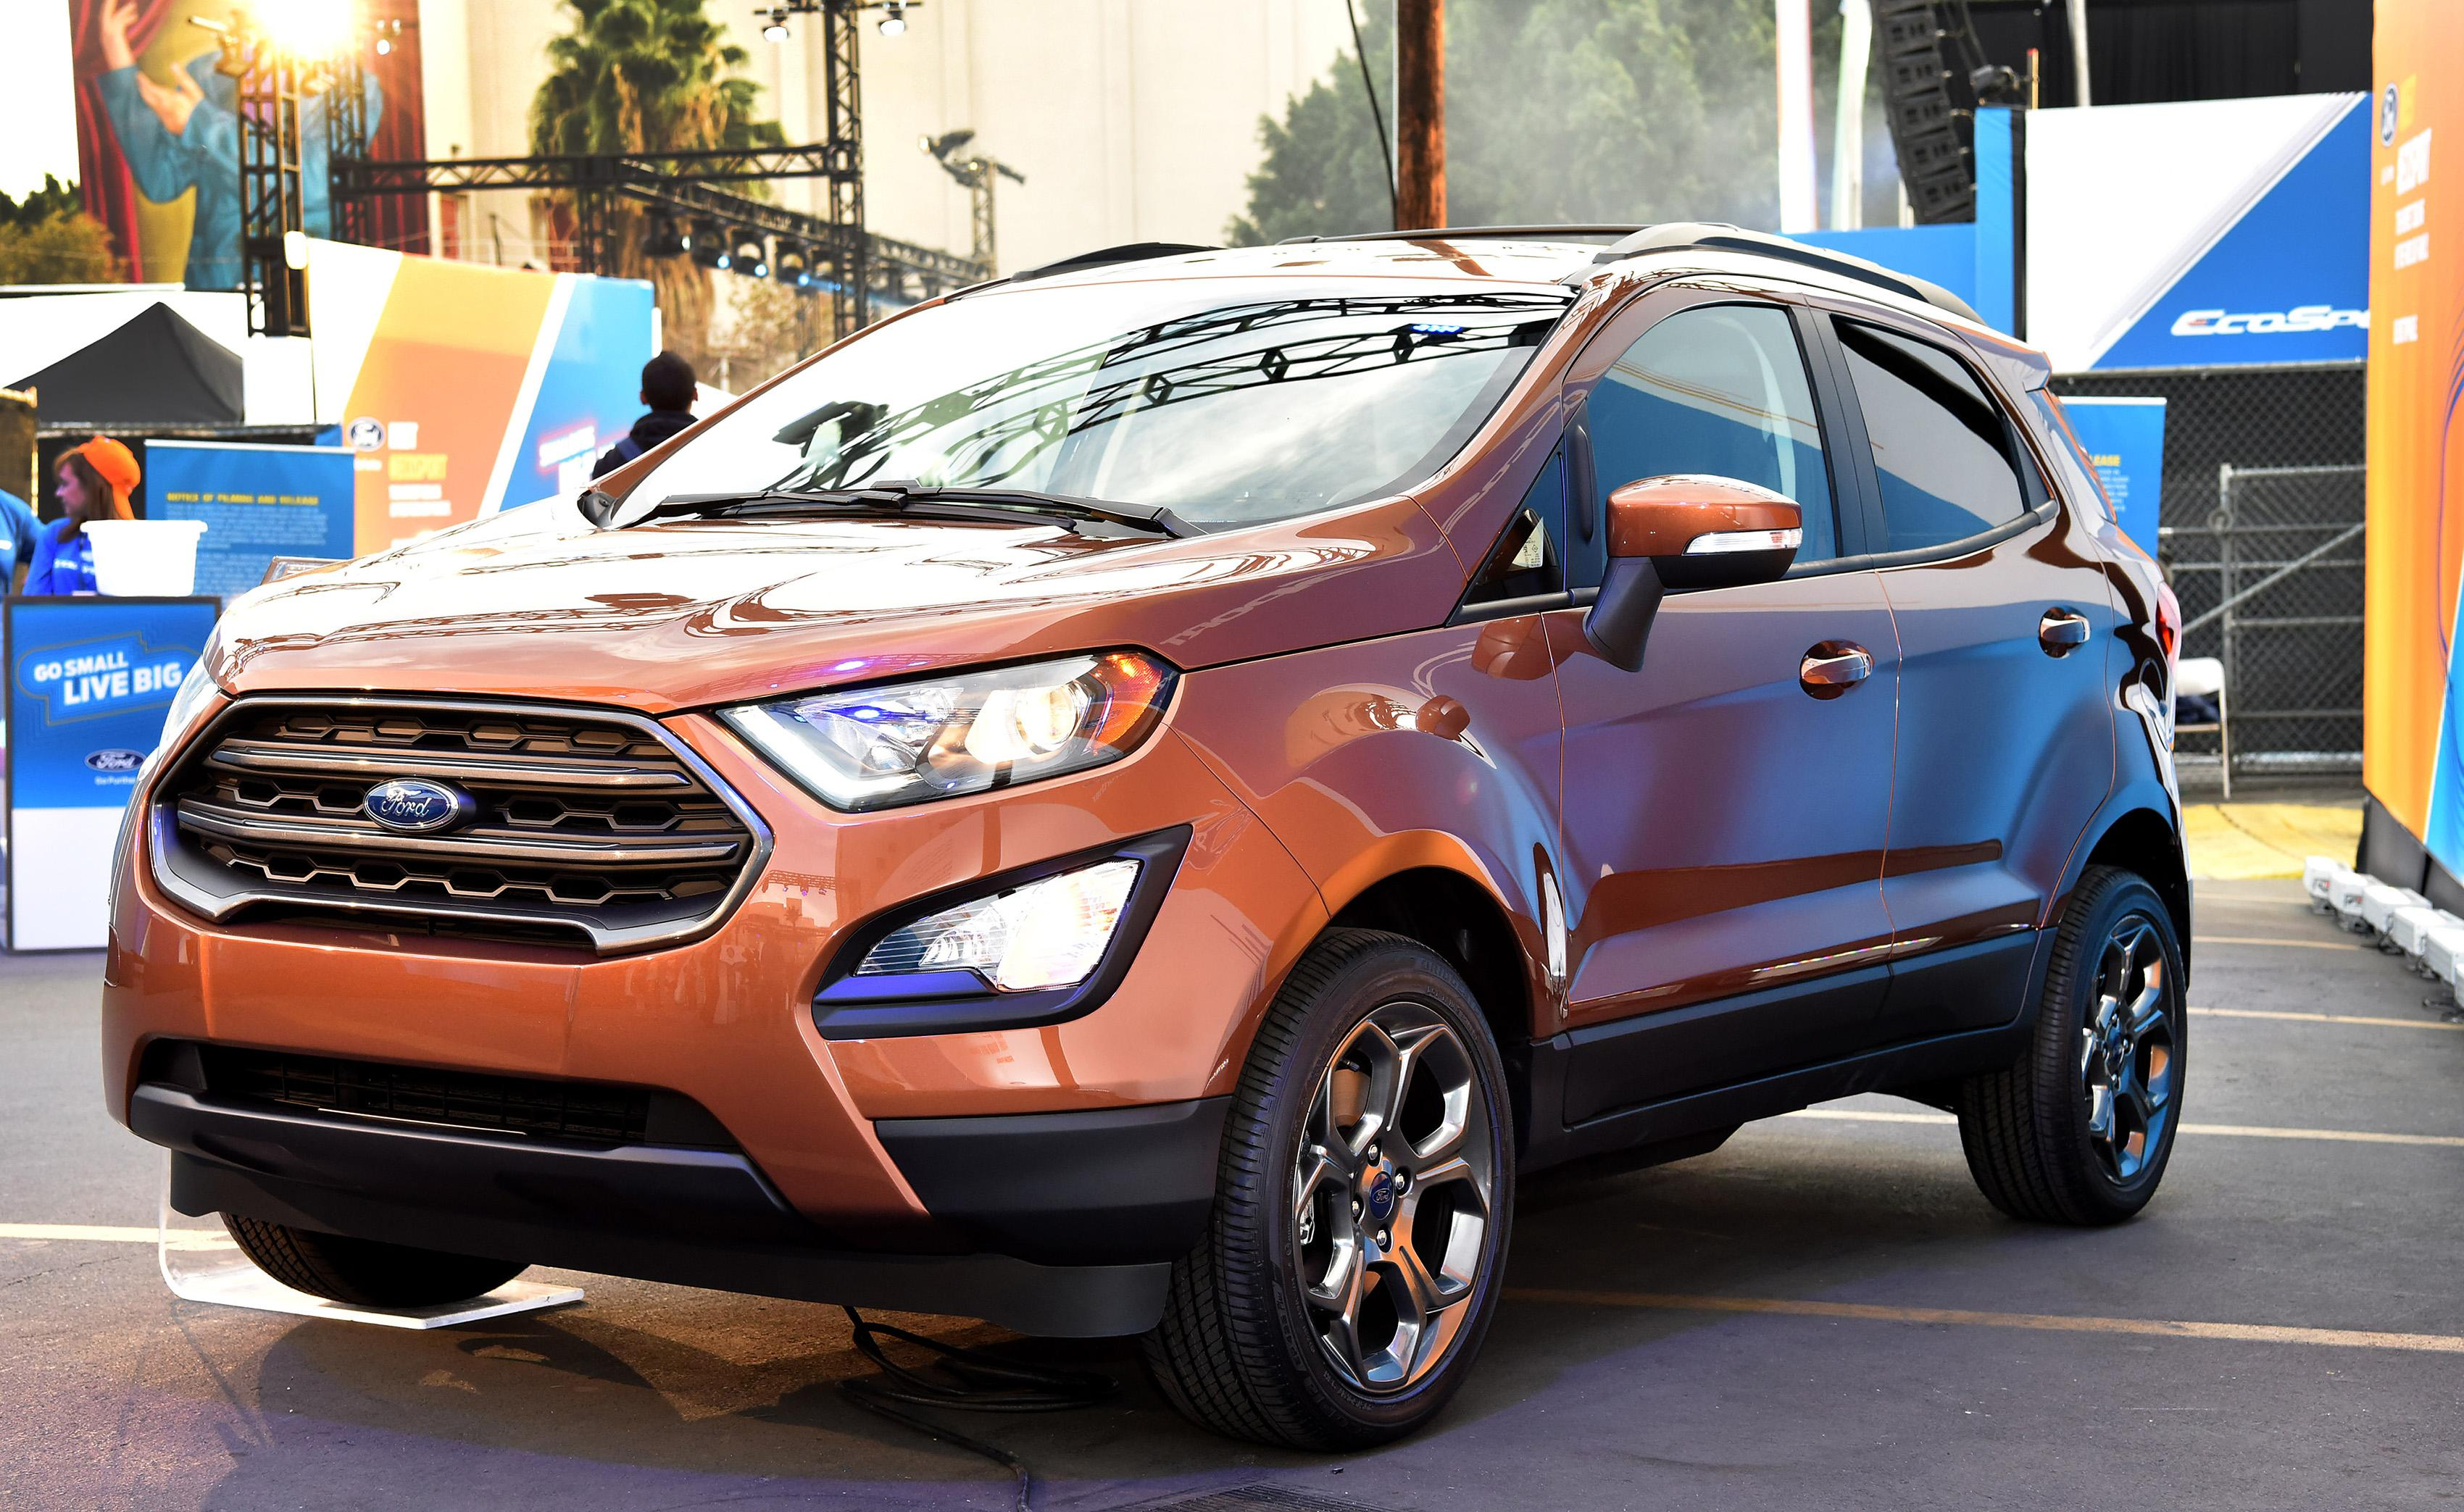 Unboxcing the all-new 2018 Ford EcoSport | Van Isle Ford